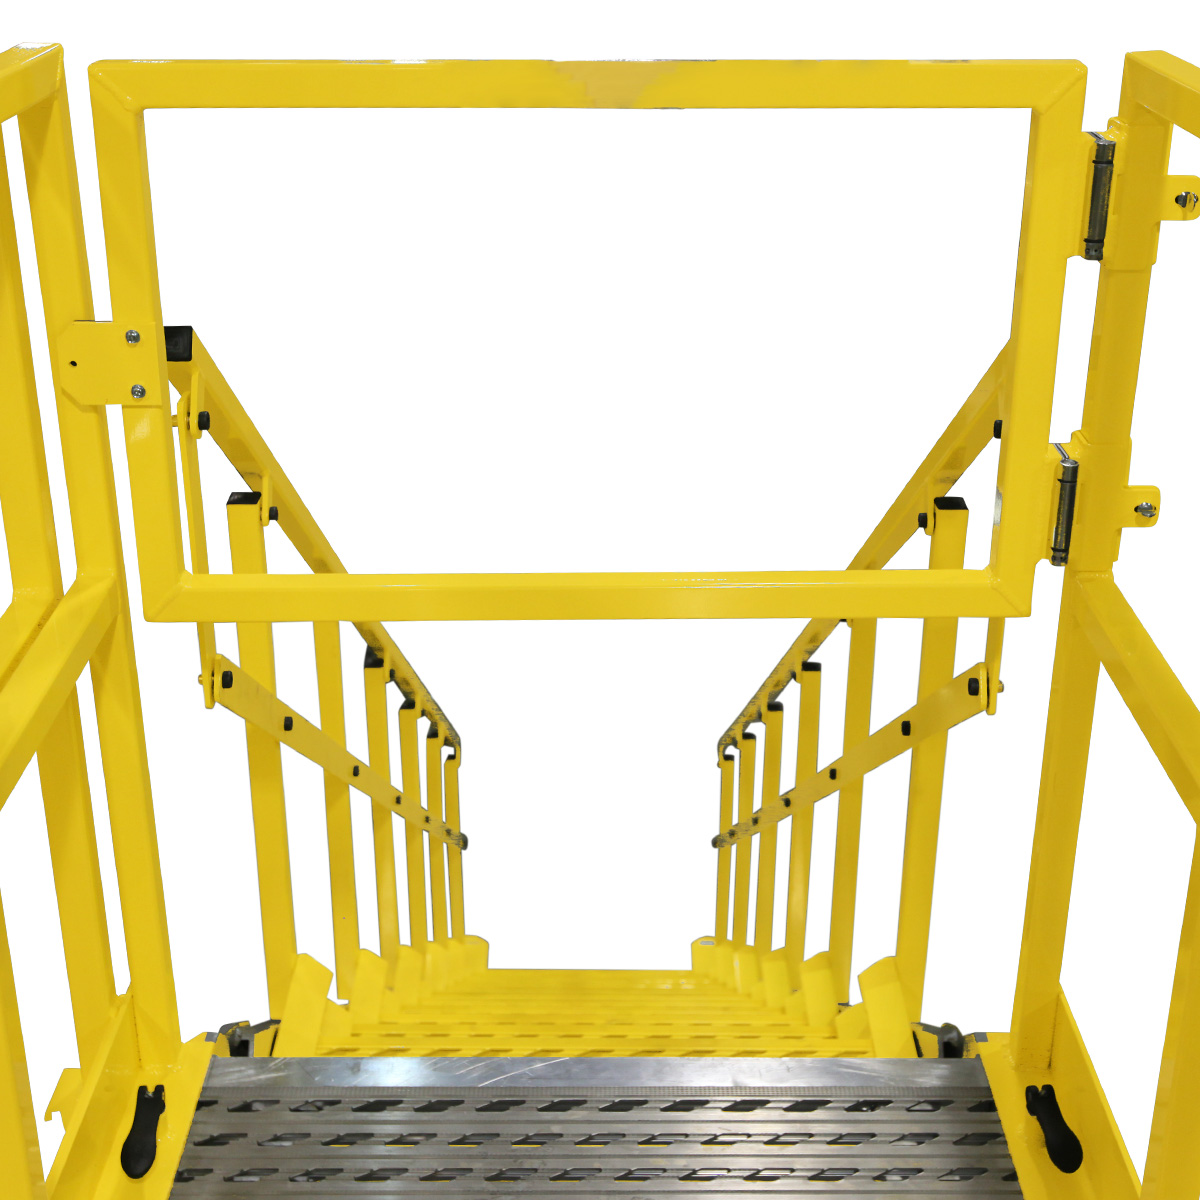 OSHA compliant, portable aluminum work platform with self-closing safety gate for 100% fall prevention.